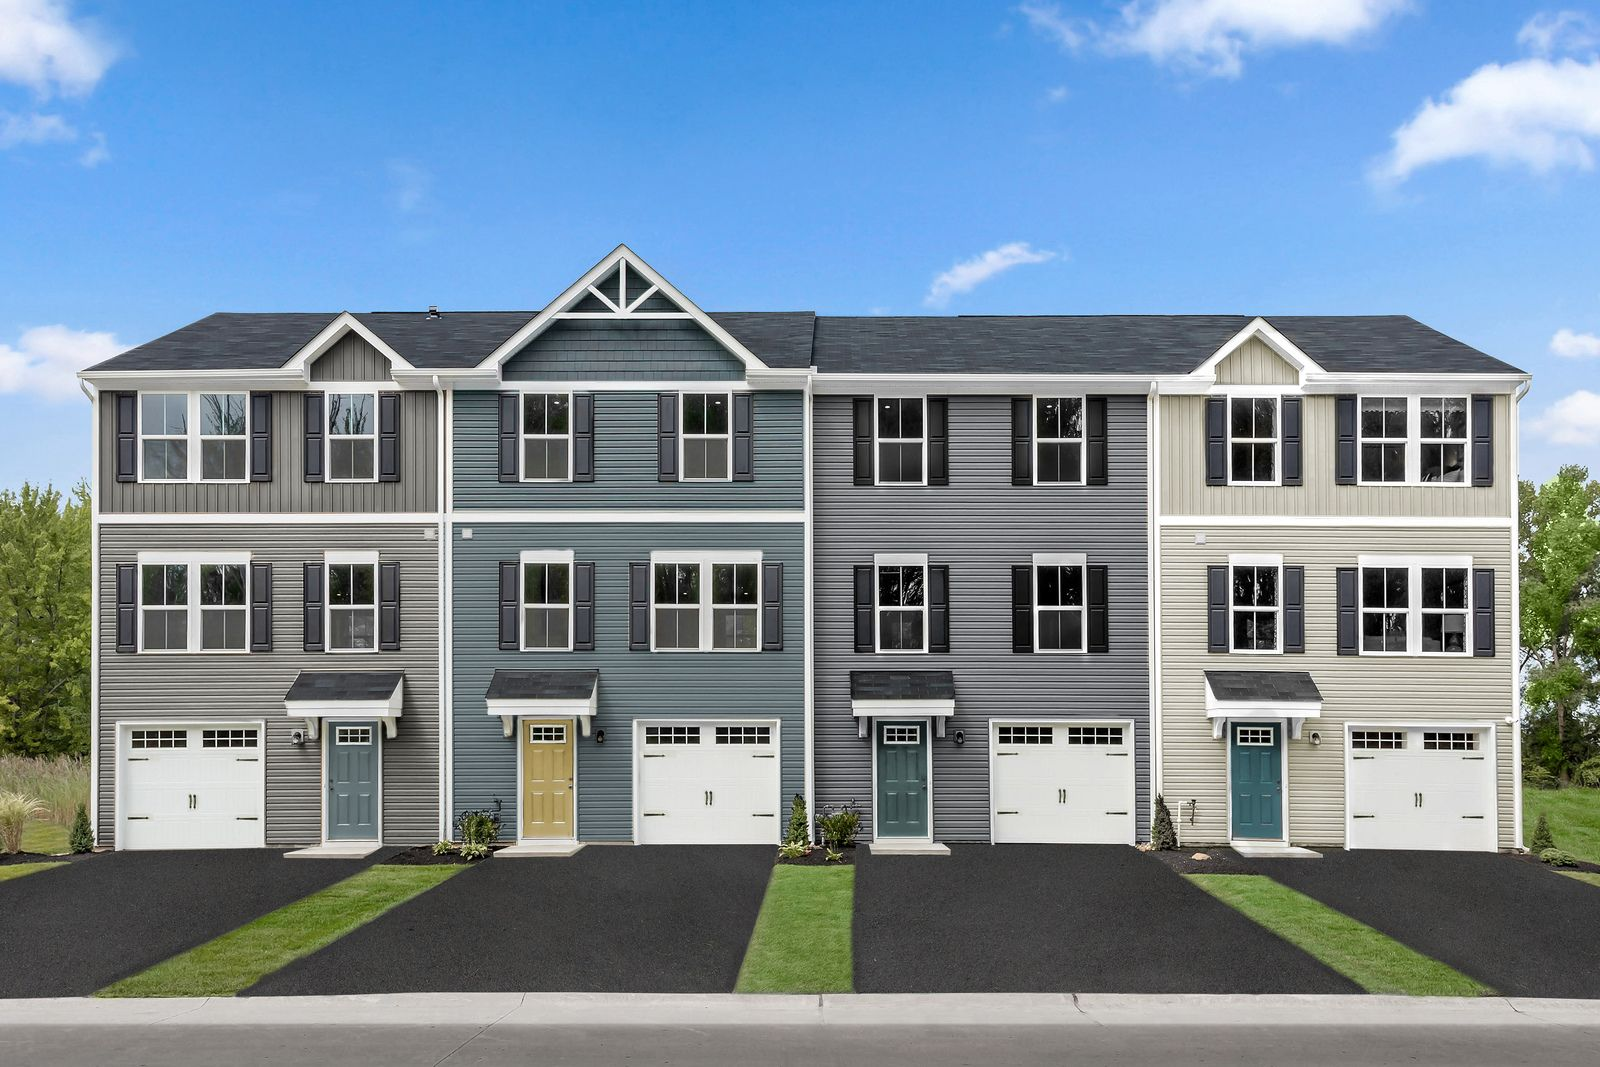 BECOME A VIP AT MEADE'S TOWNHOMES:Own a brand new garage townhome in an amenity filled community! ..